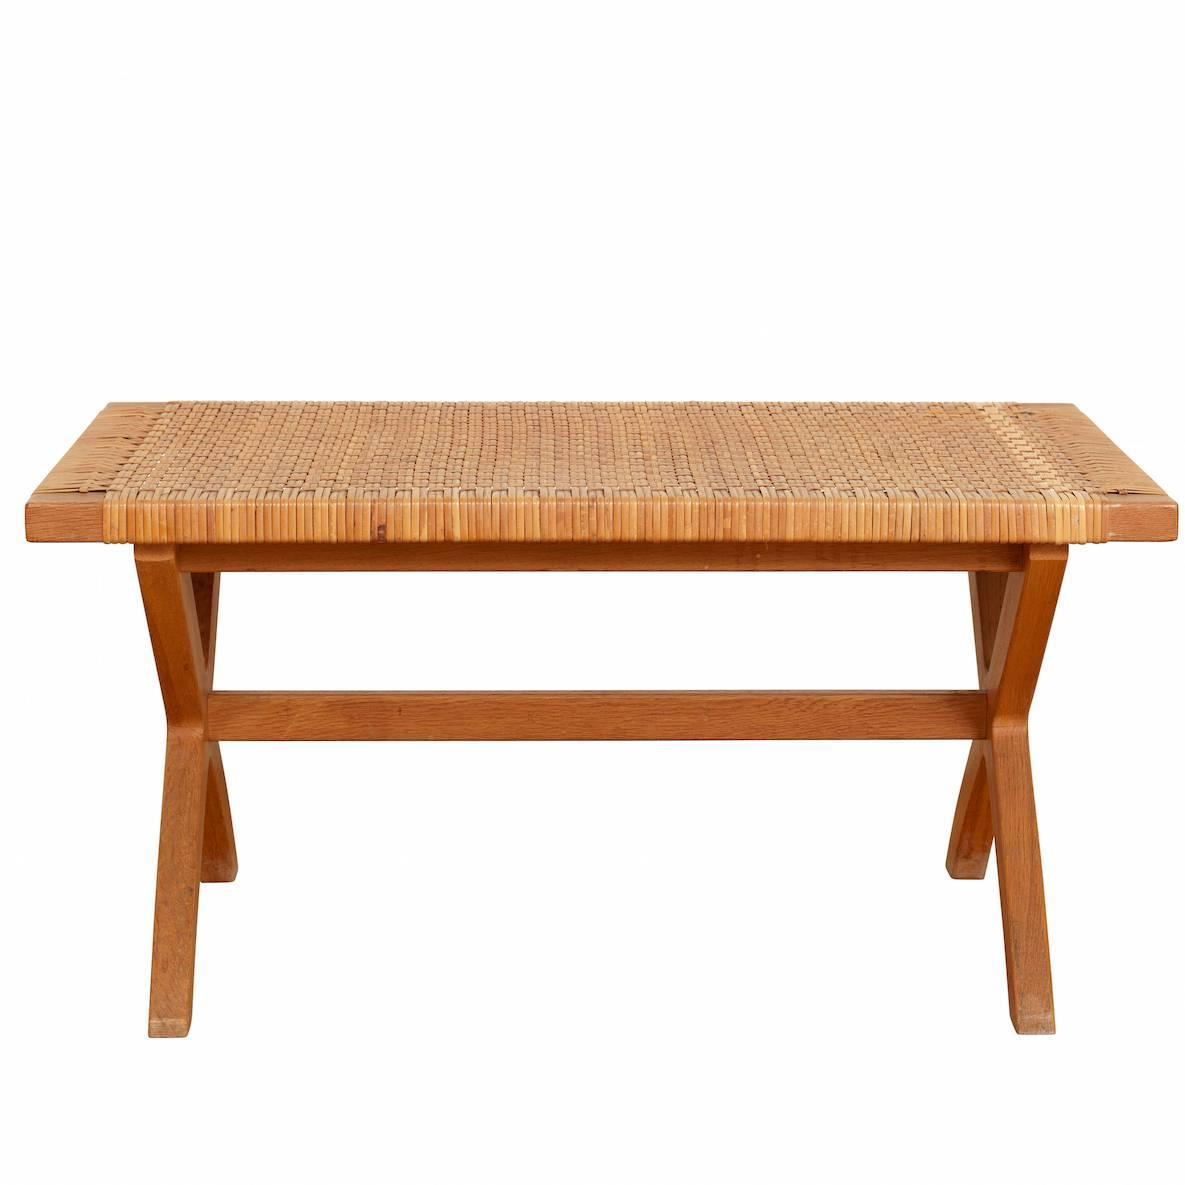 Scandinavian Furniture Sale Danish Design Bench For Sale At 1stdibs